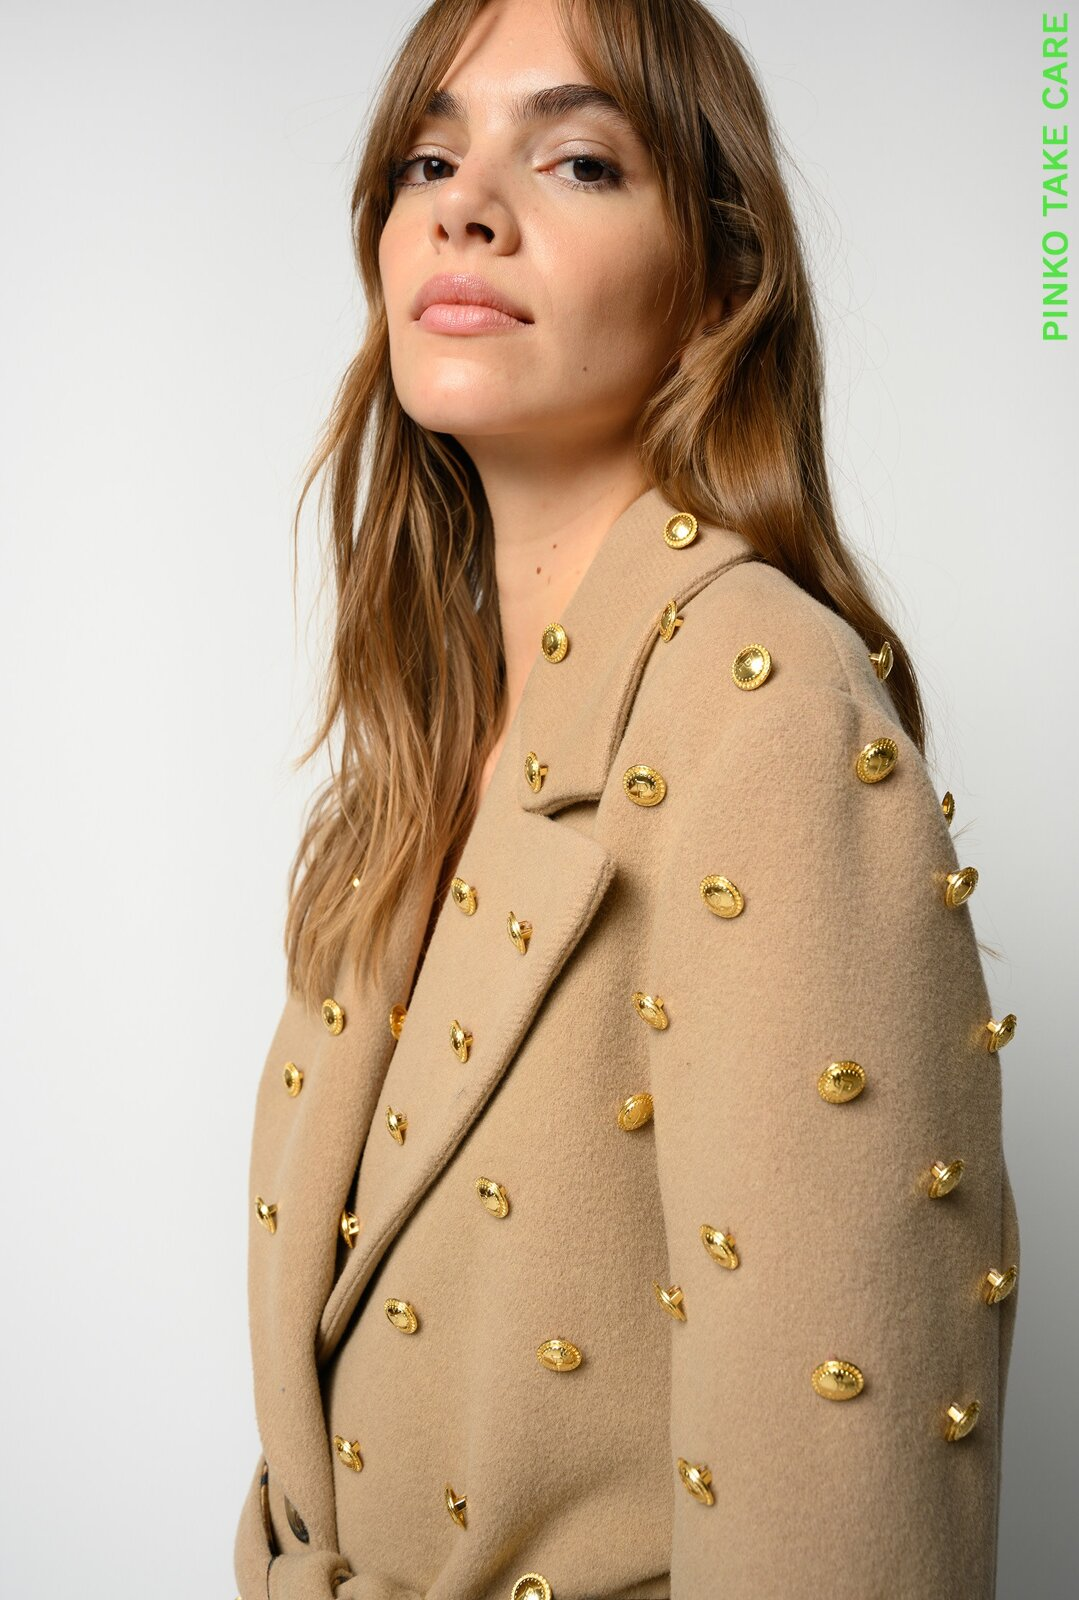 Robe Coat With Buttons Reimagine - Pinko